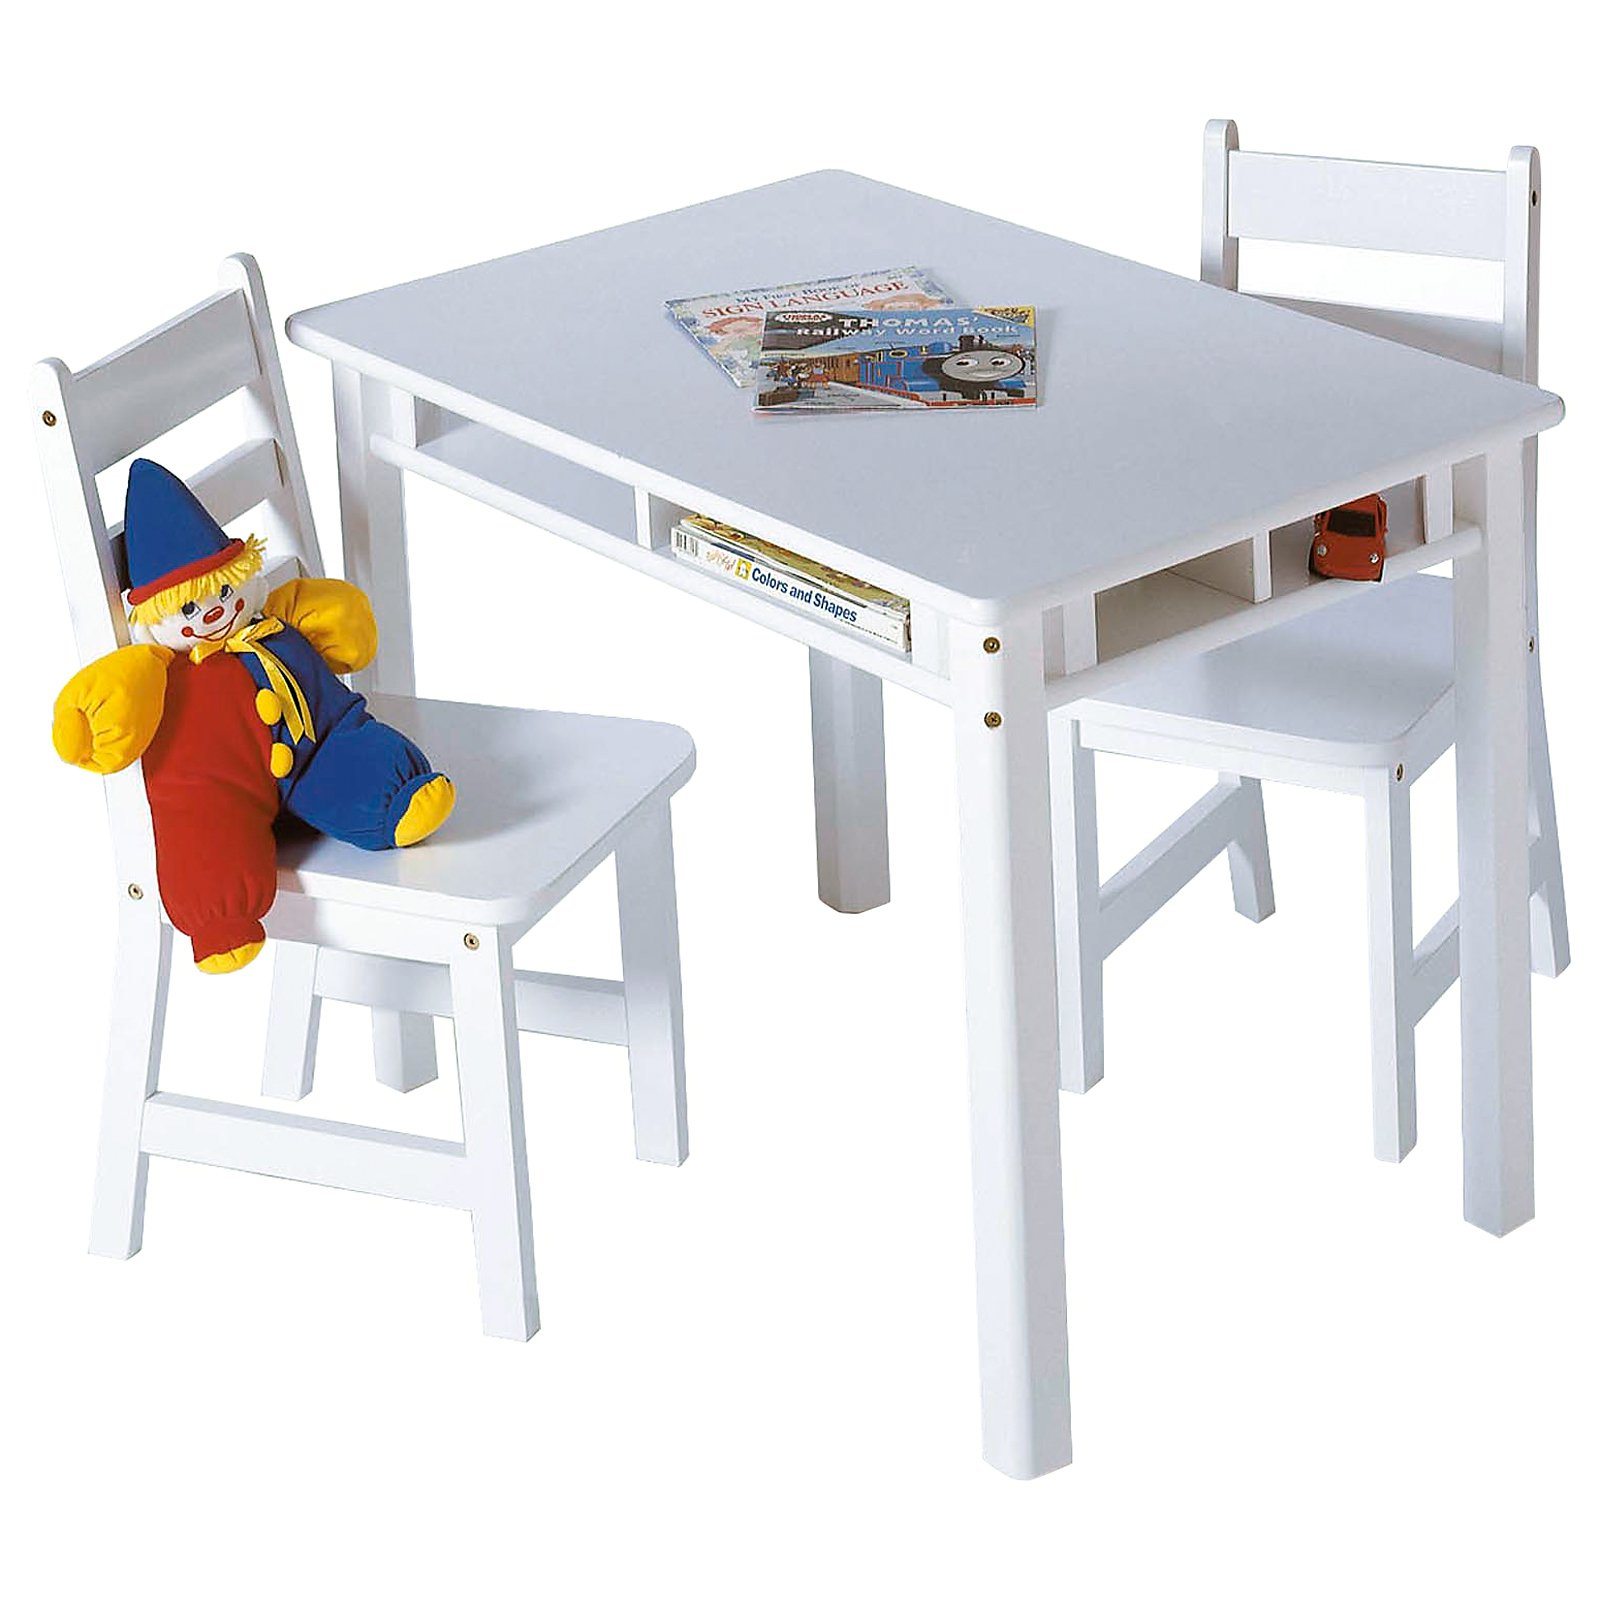 Beau Lipper Childrens Rectangular Table And 2 Chairs Set With Shelves, Multiple  Colors